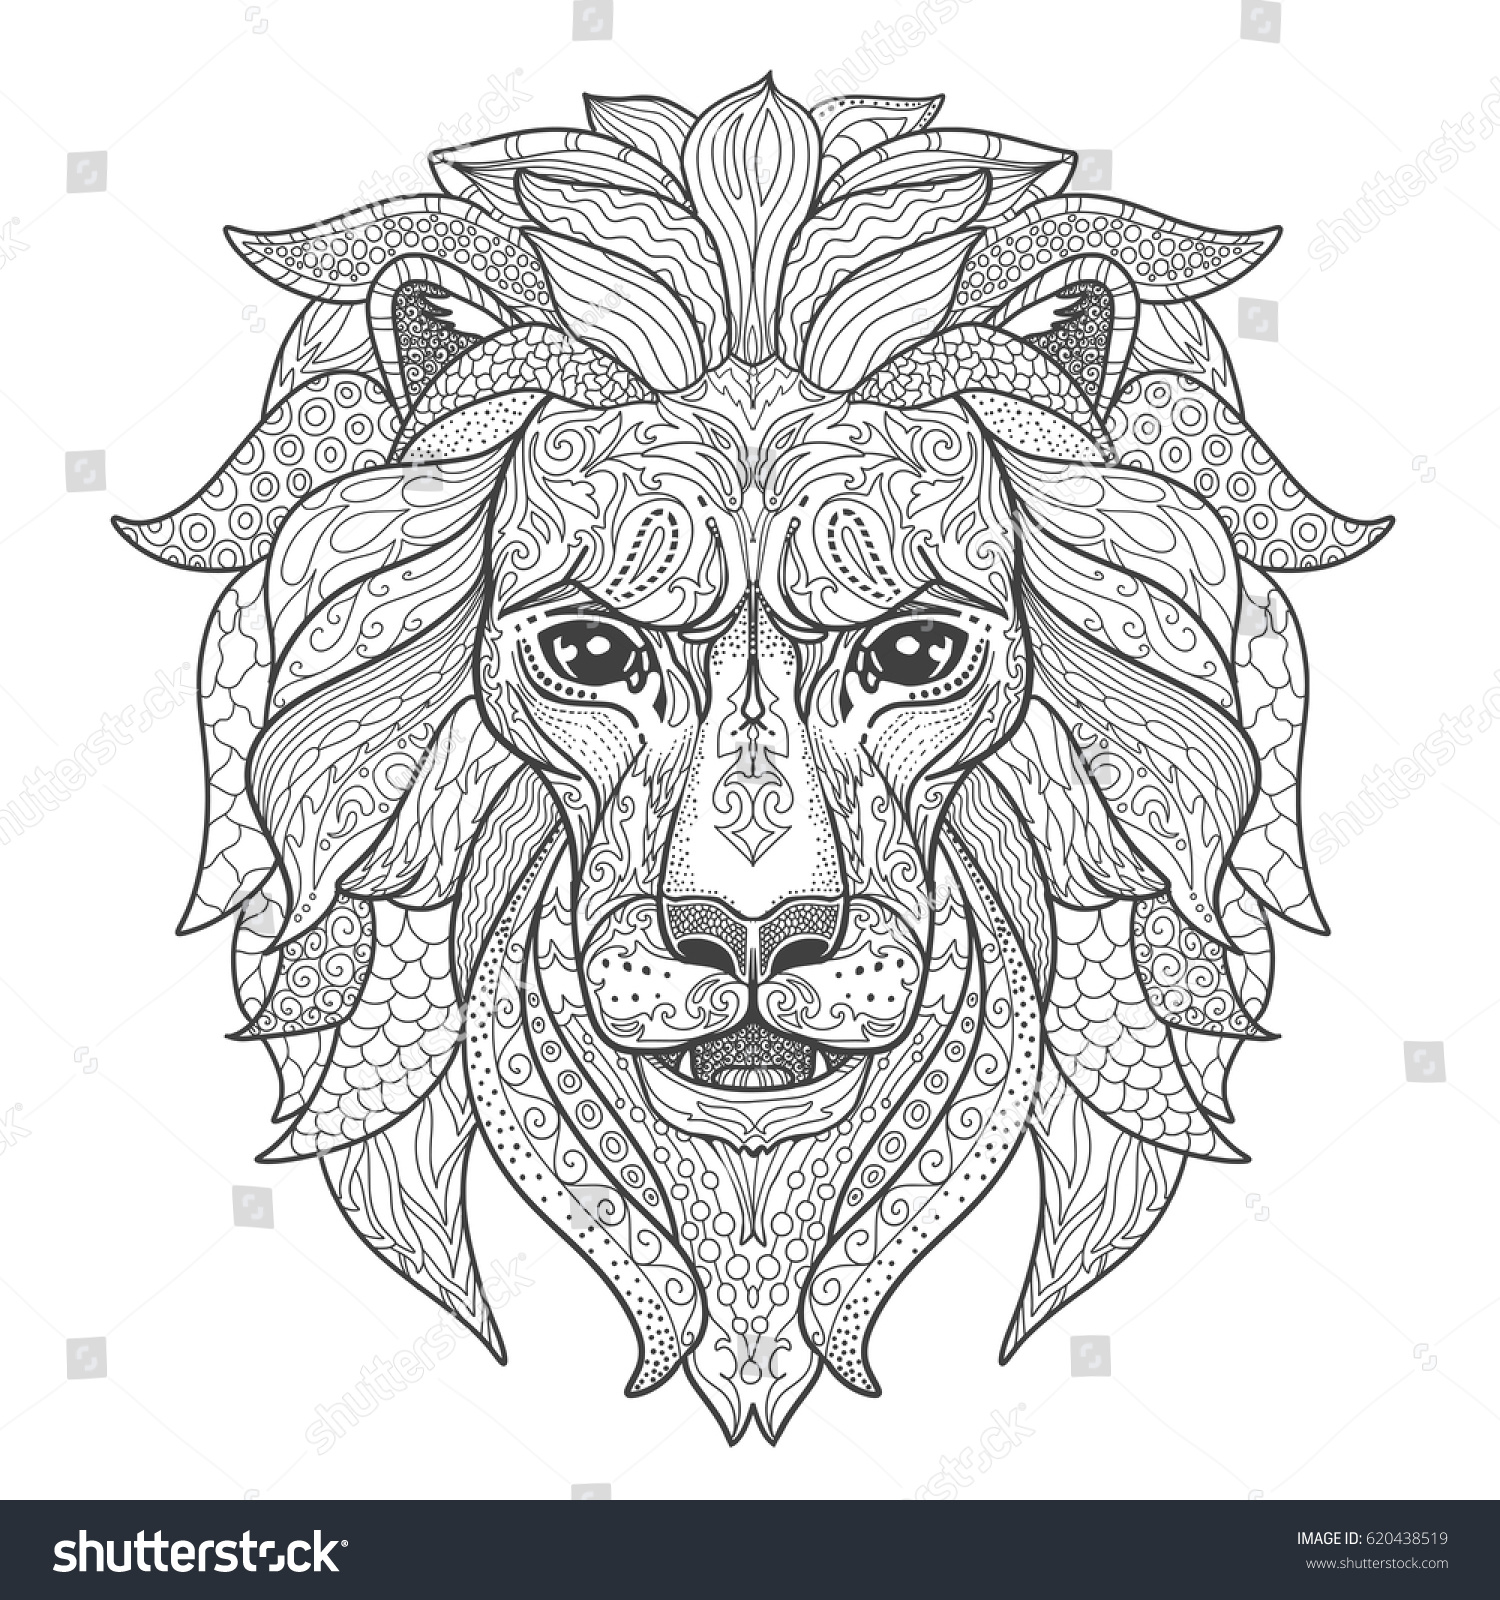 Lion Head Page Adult Coloring Book Stock Vector 620438519 - Shutterstock